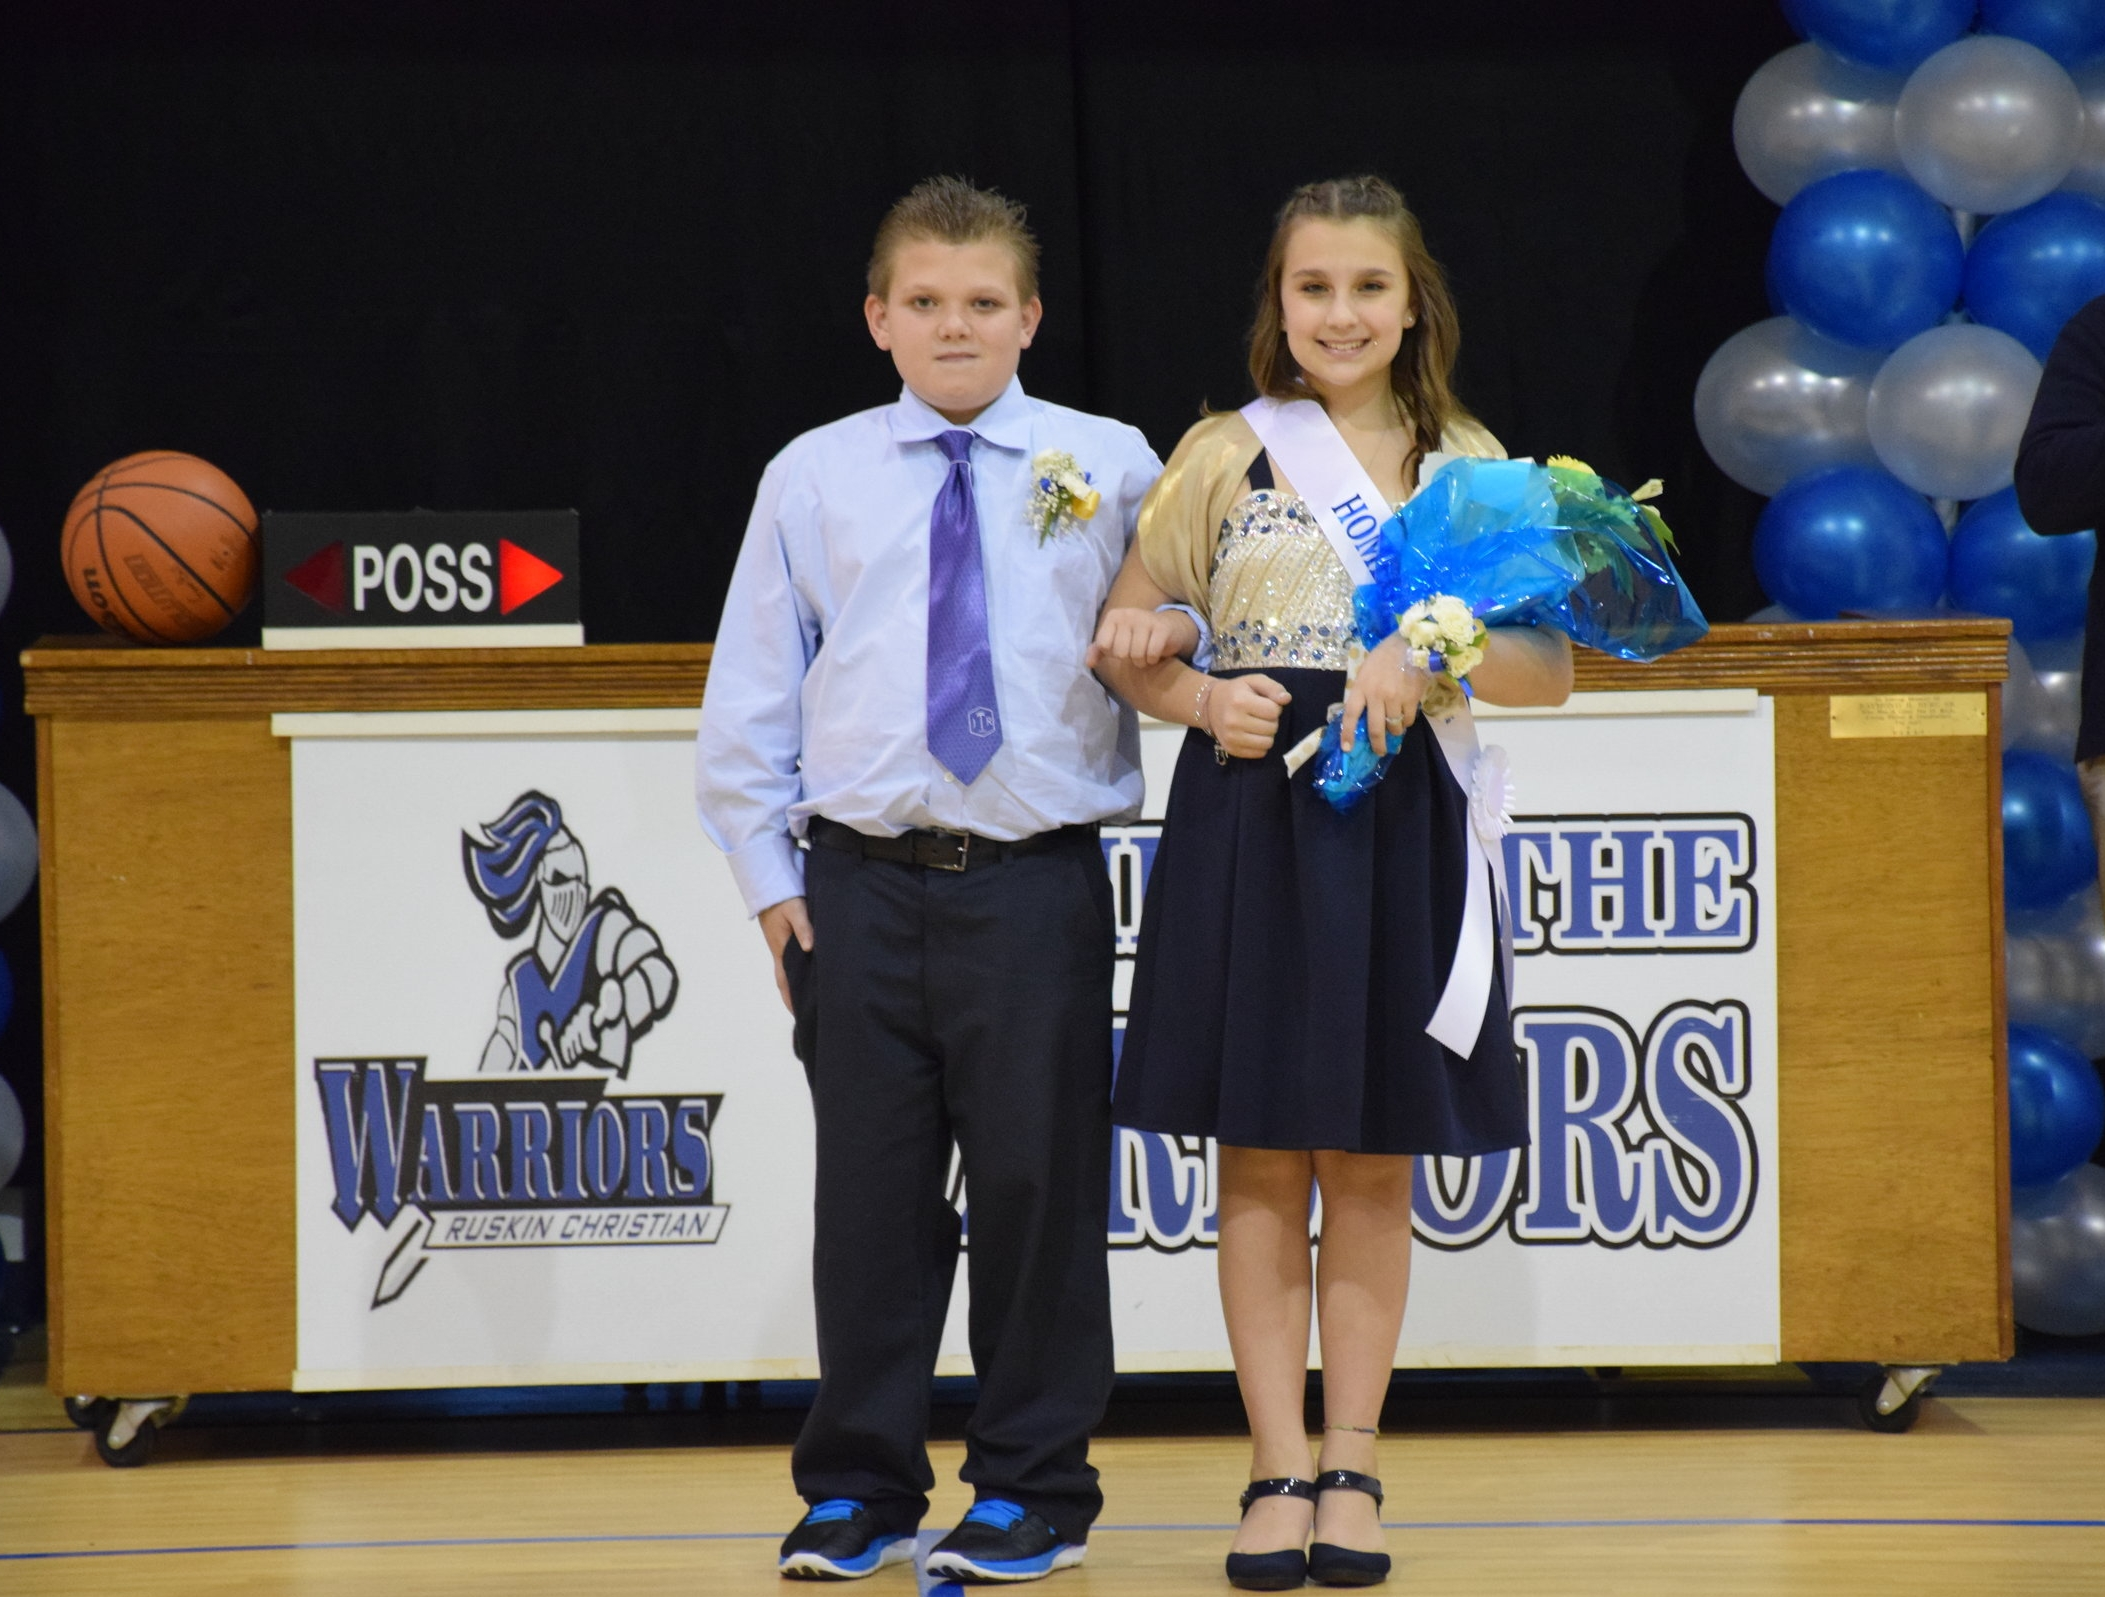 Jason Titus & Hayley Degulis - 7th Grade Representatives